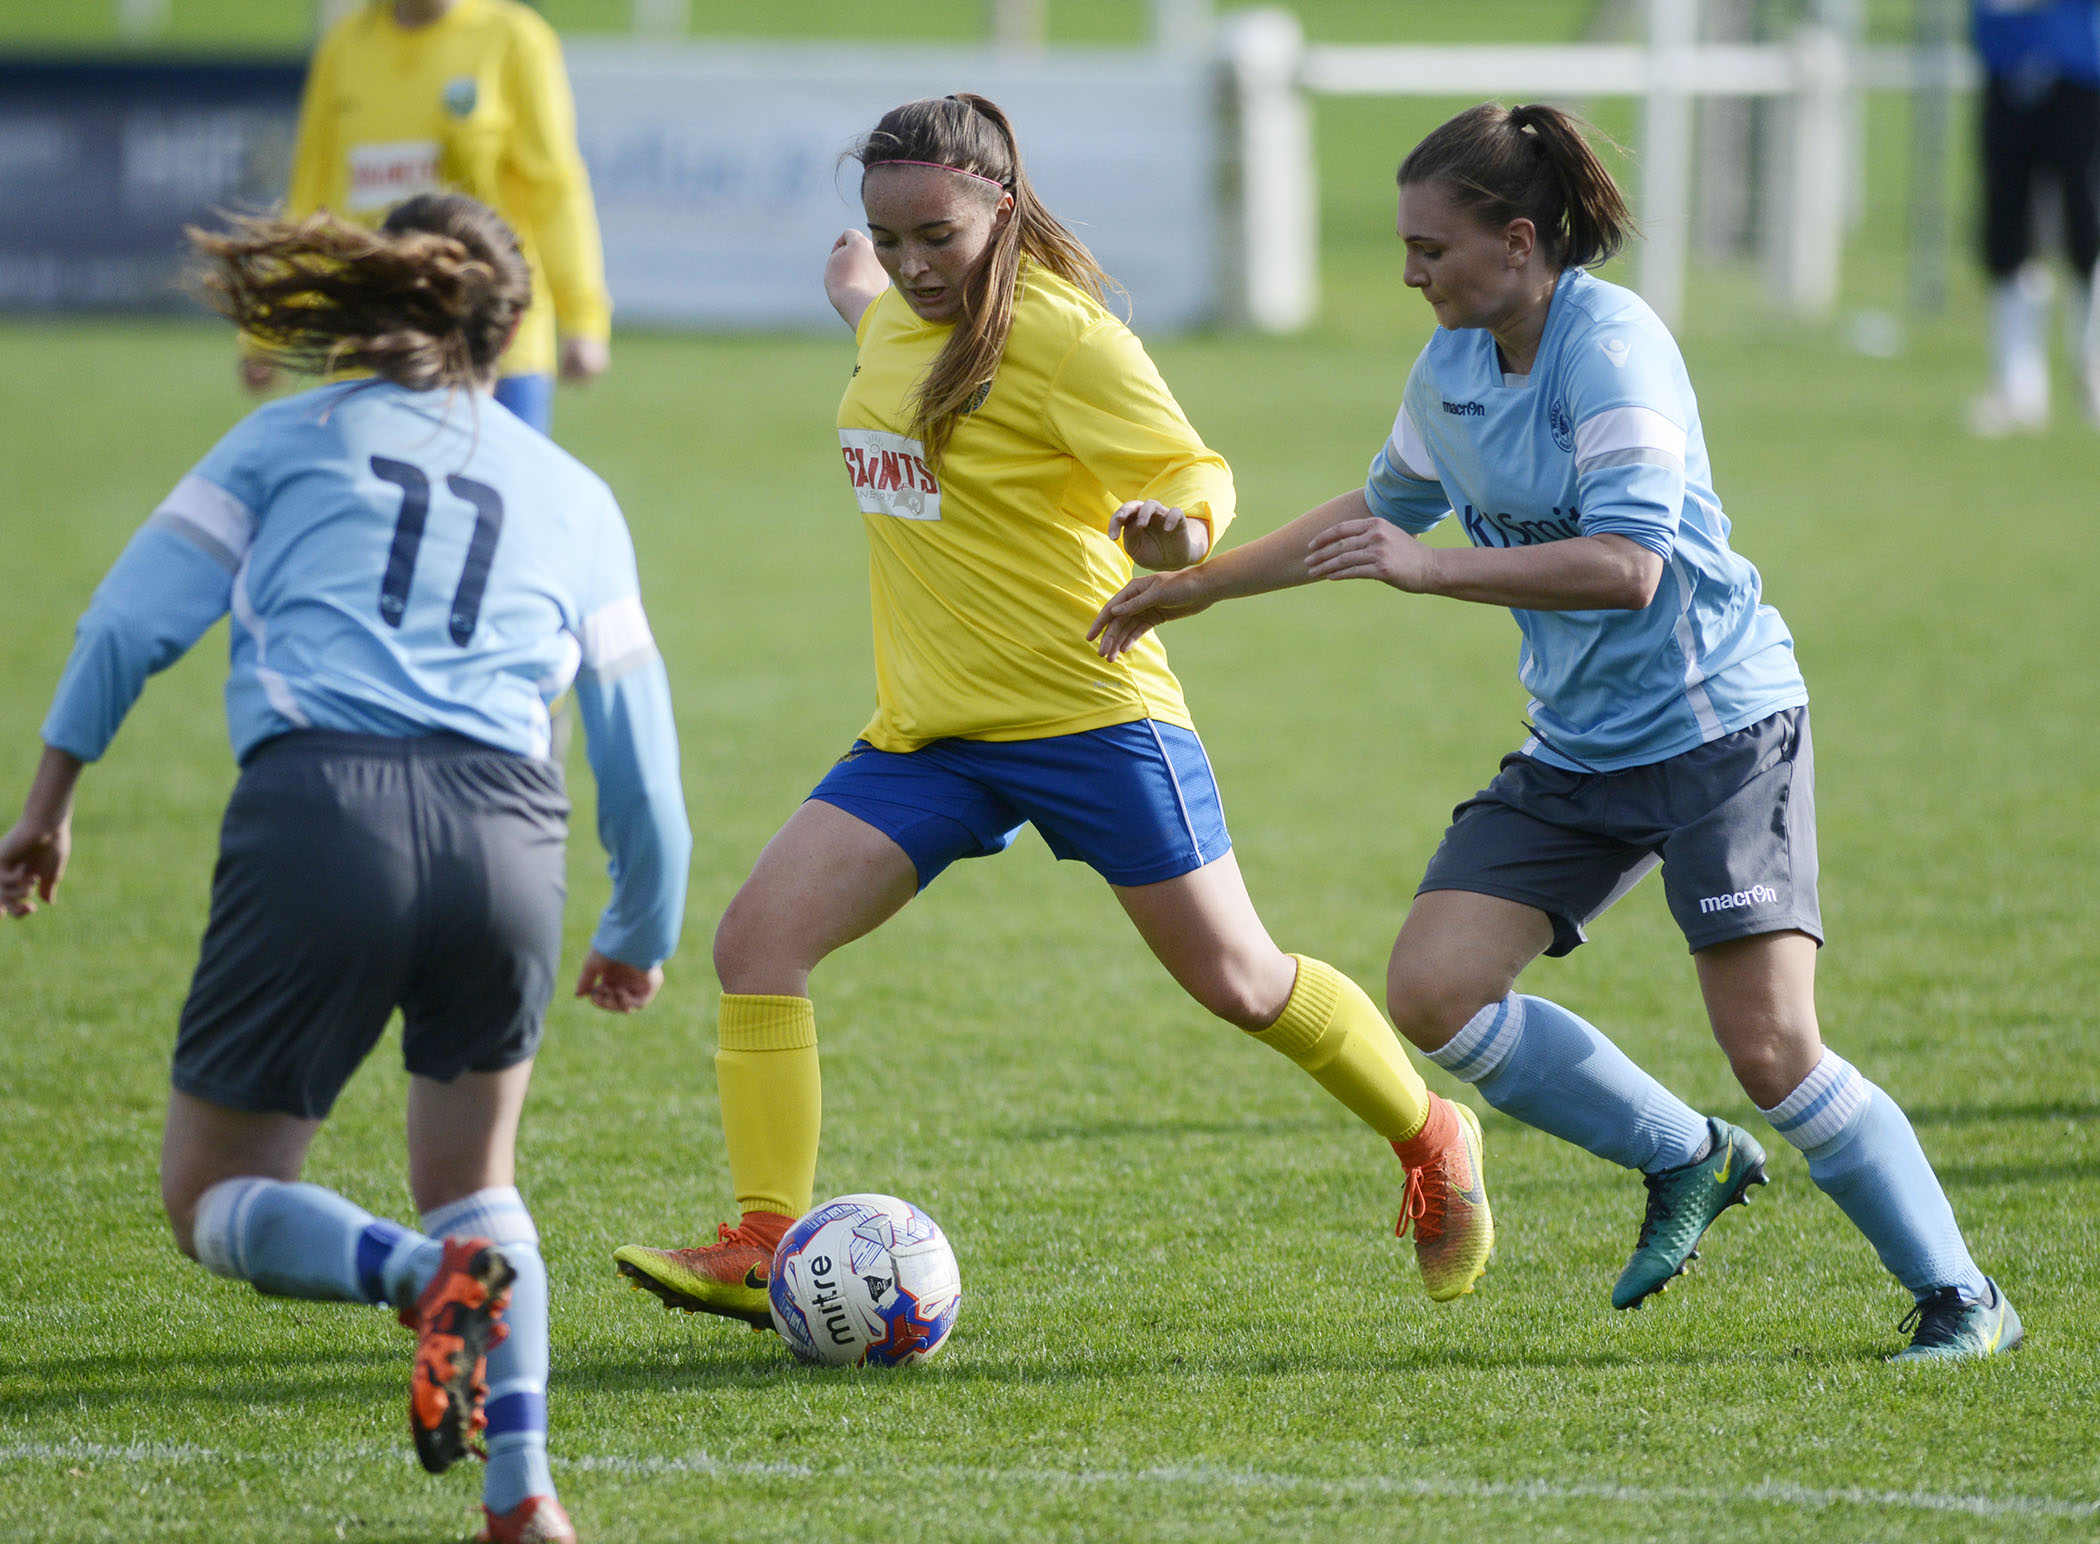 Woodley United Ladies (blue) try to win the ball back from Ascot United